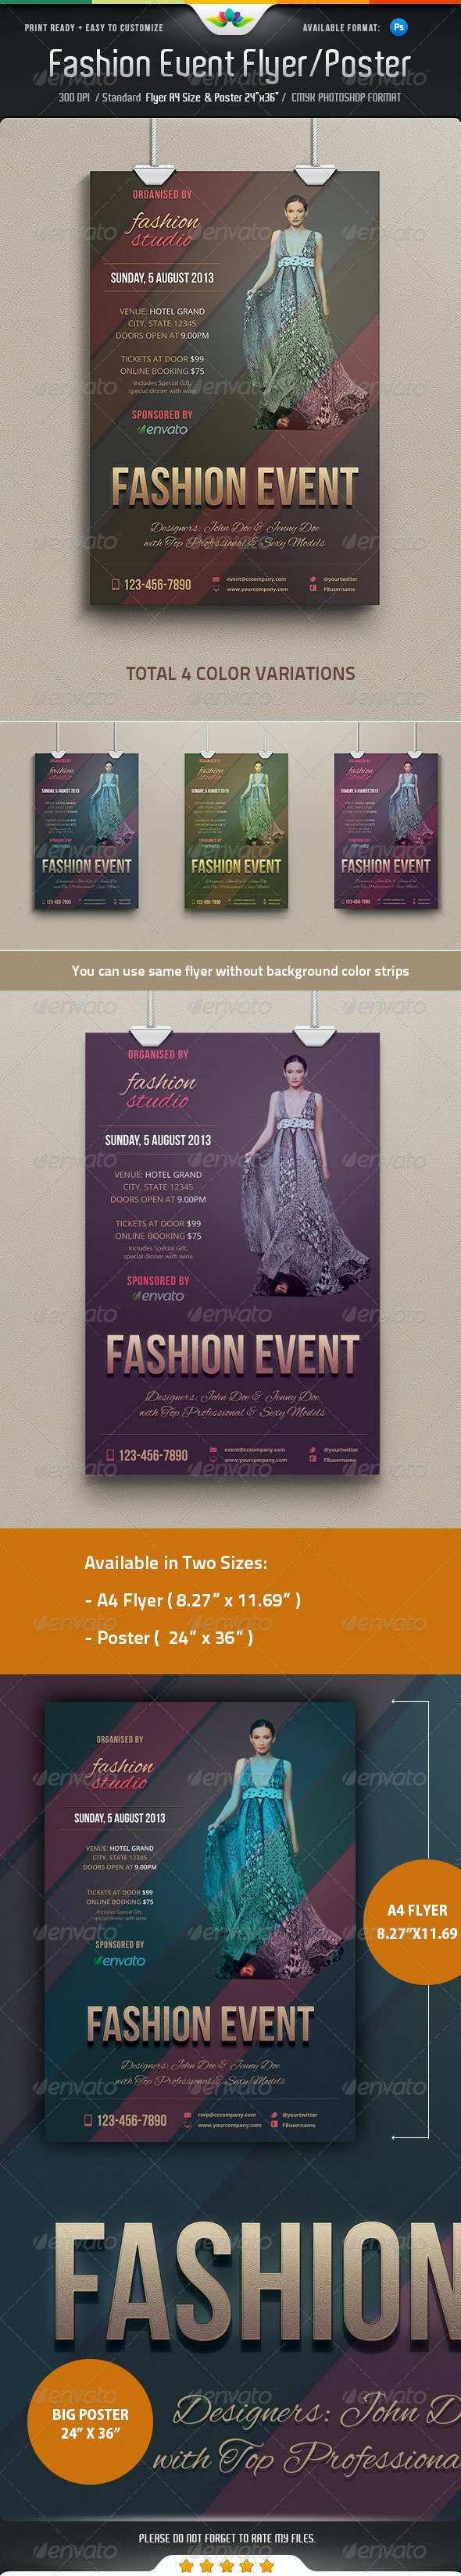 Fashion Event Flyer / Poster - Events Flyers